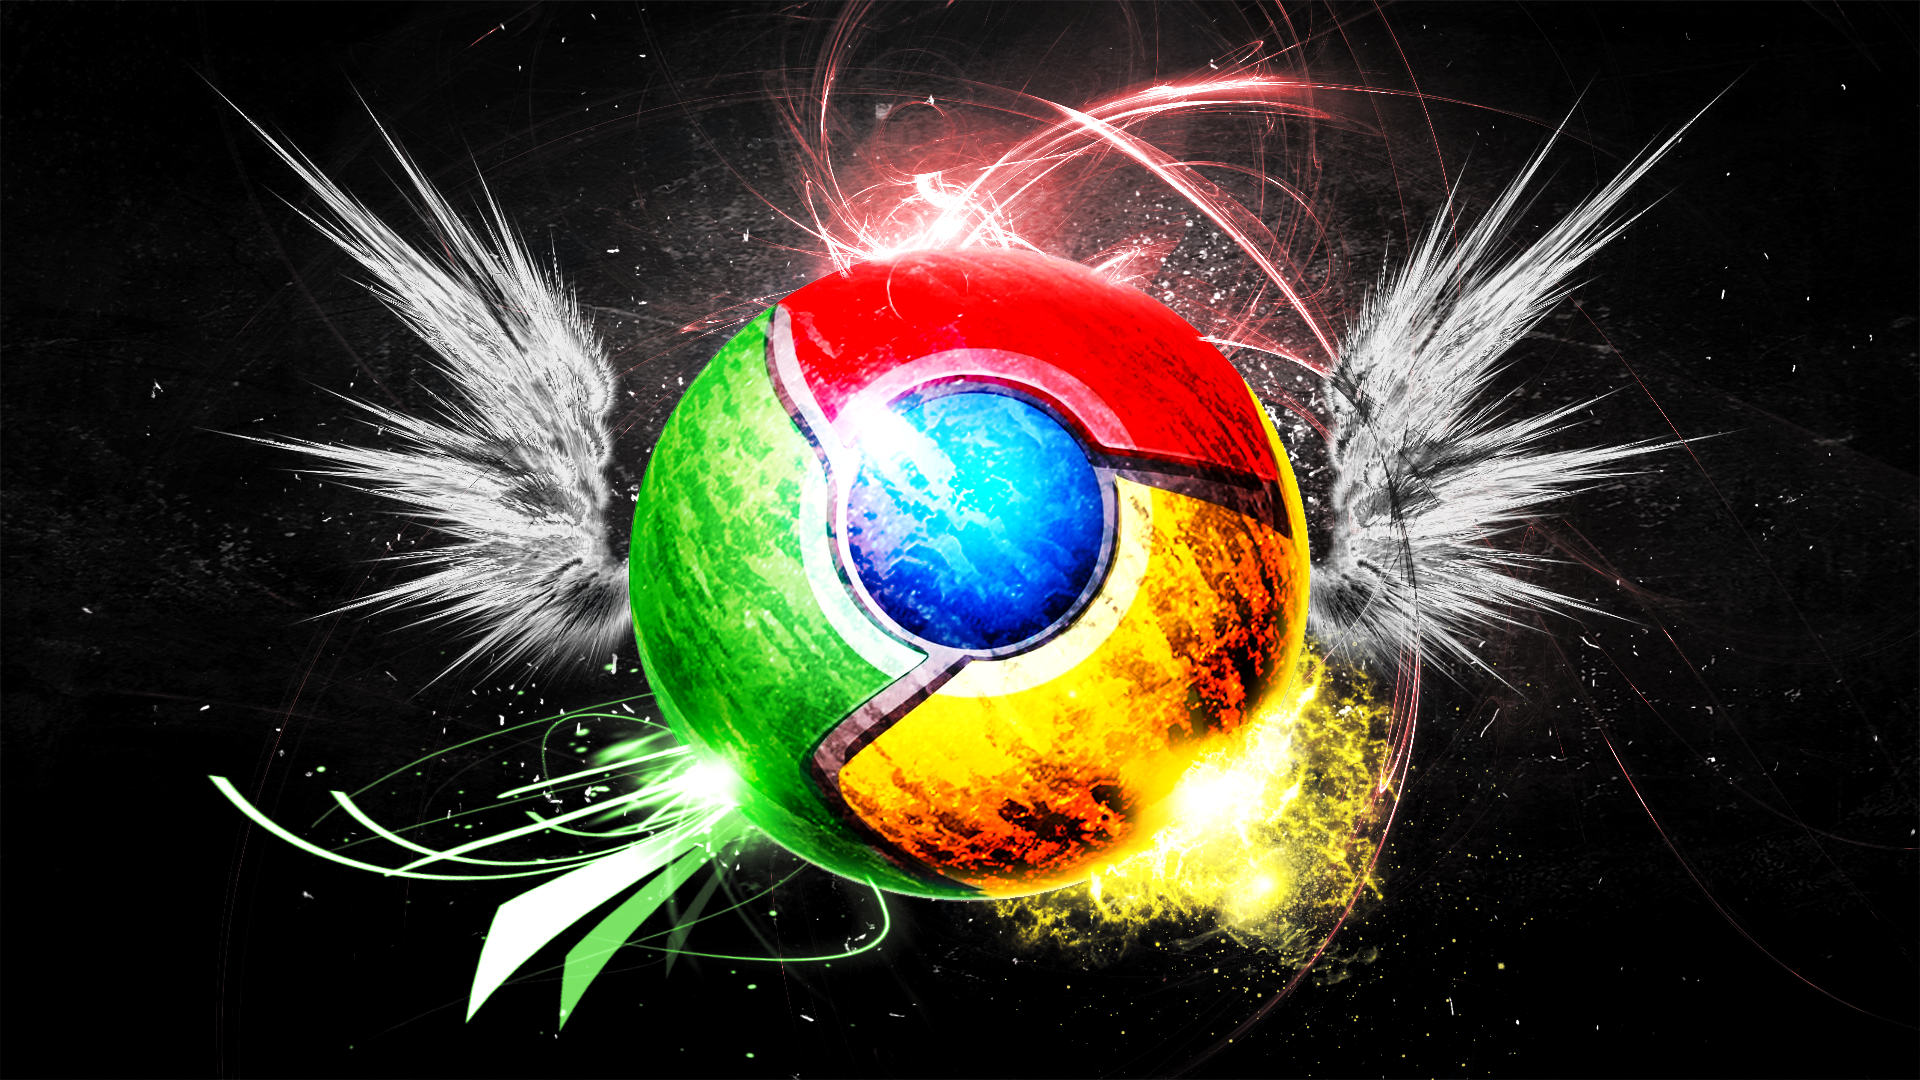 Desktop Images - Free Chrome, Emeline Netter